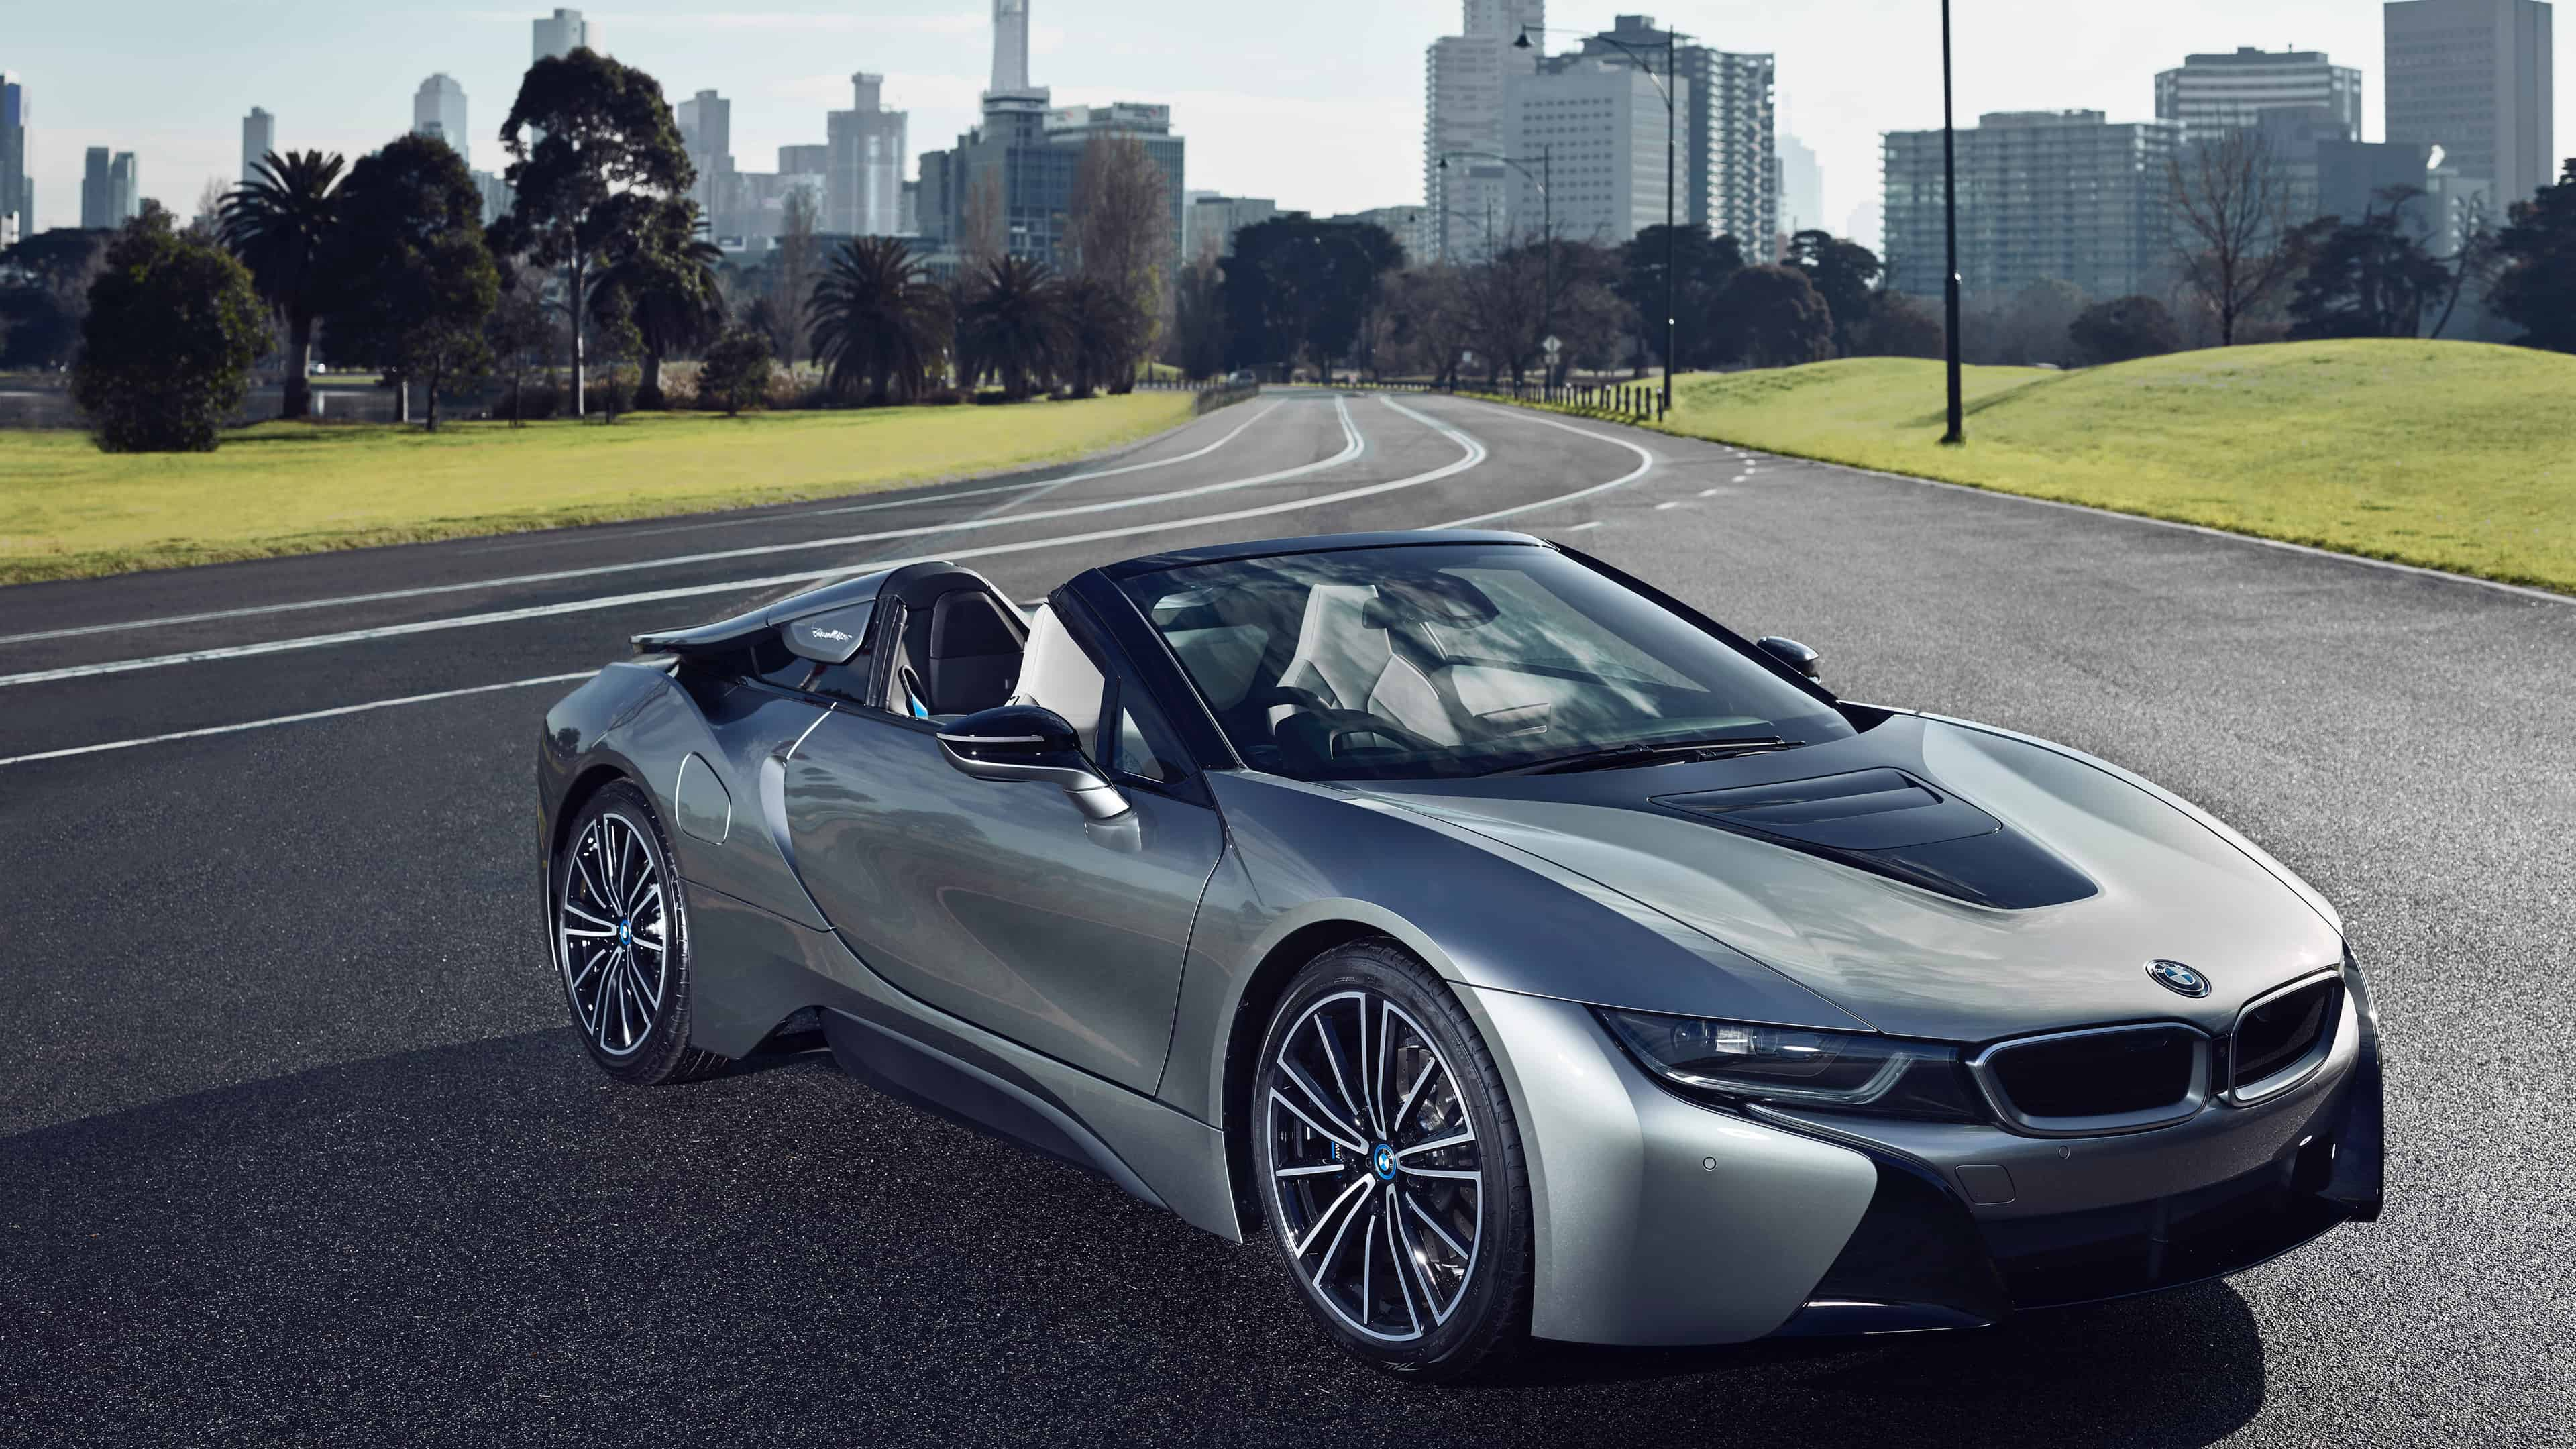 bmw i8 uhd 4k wallpaper